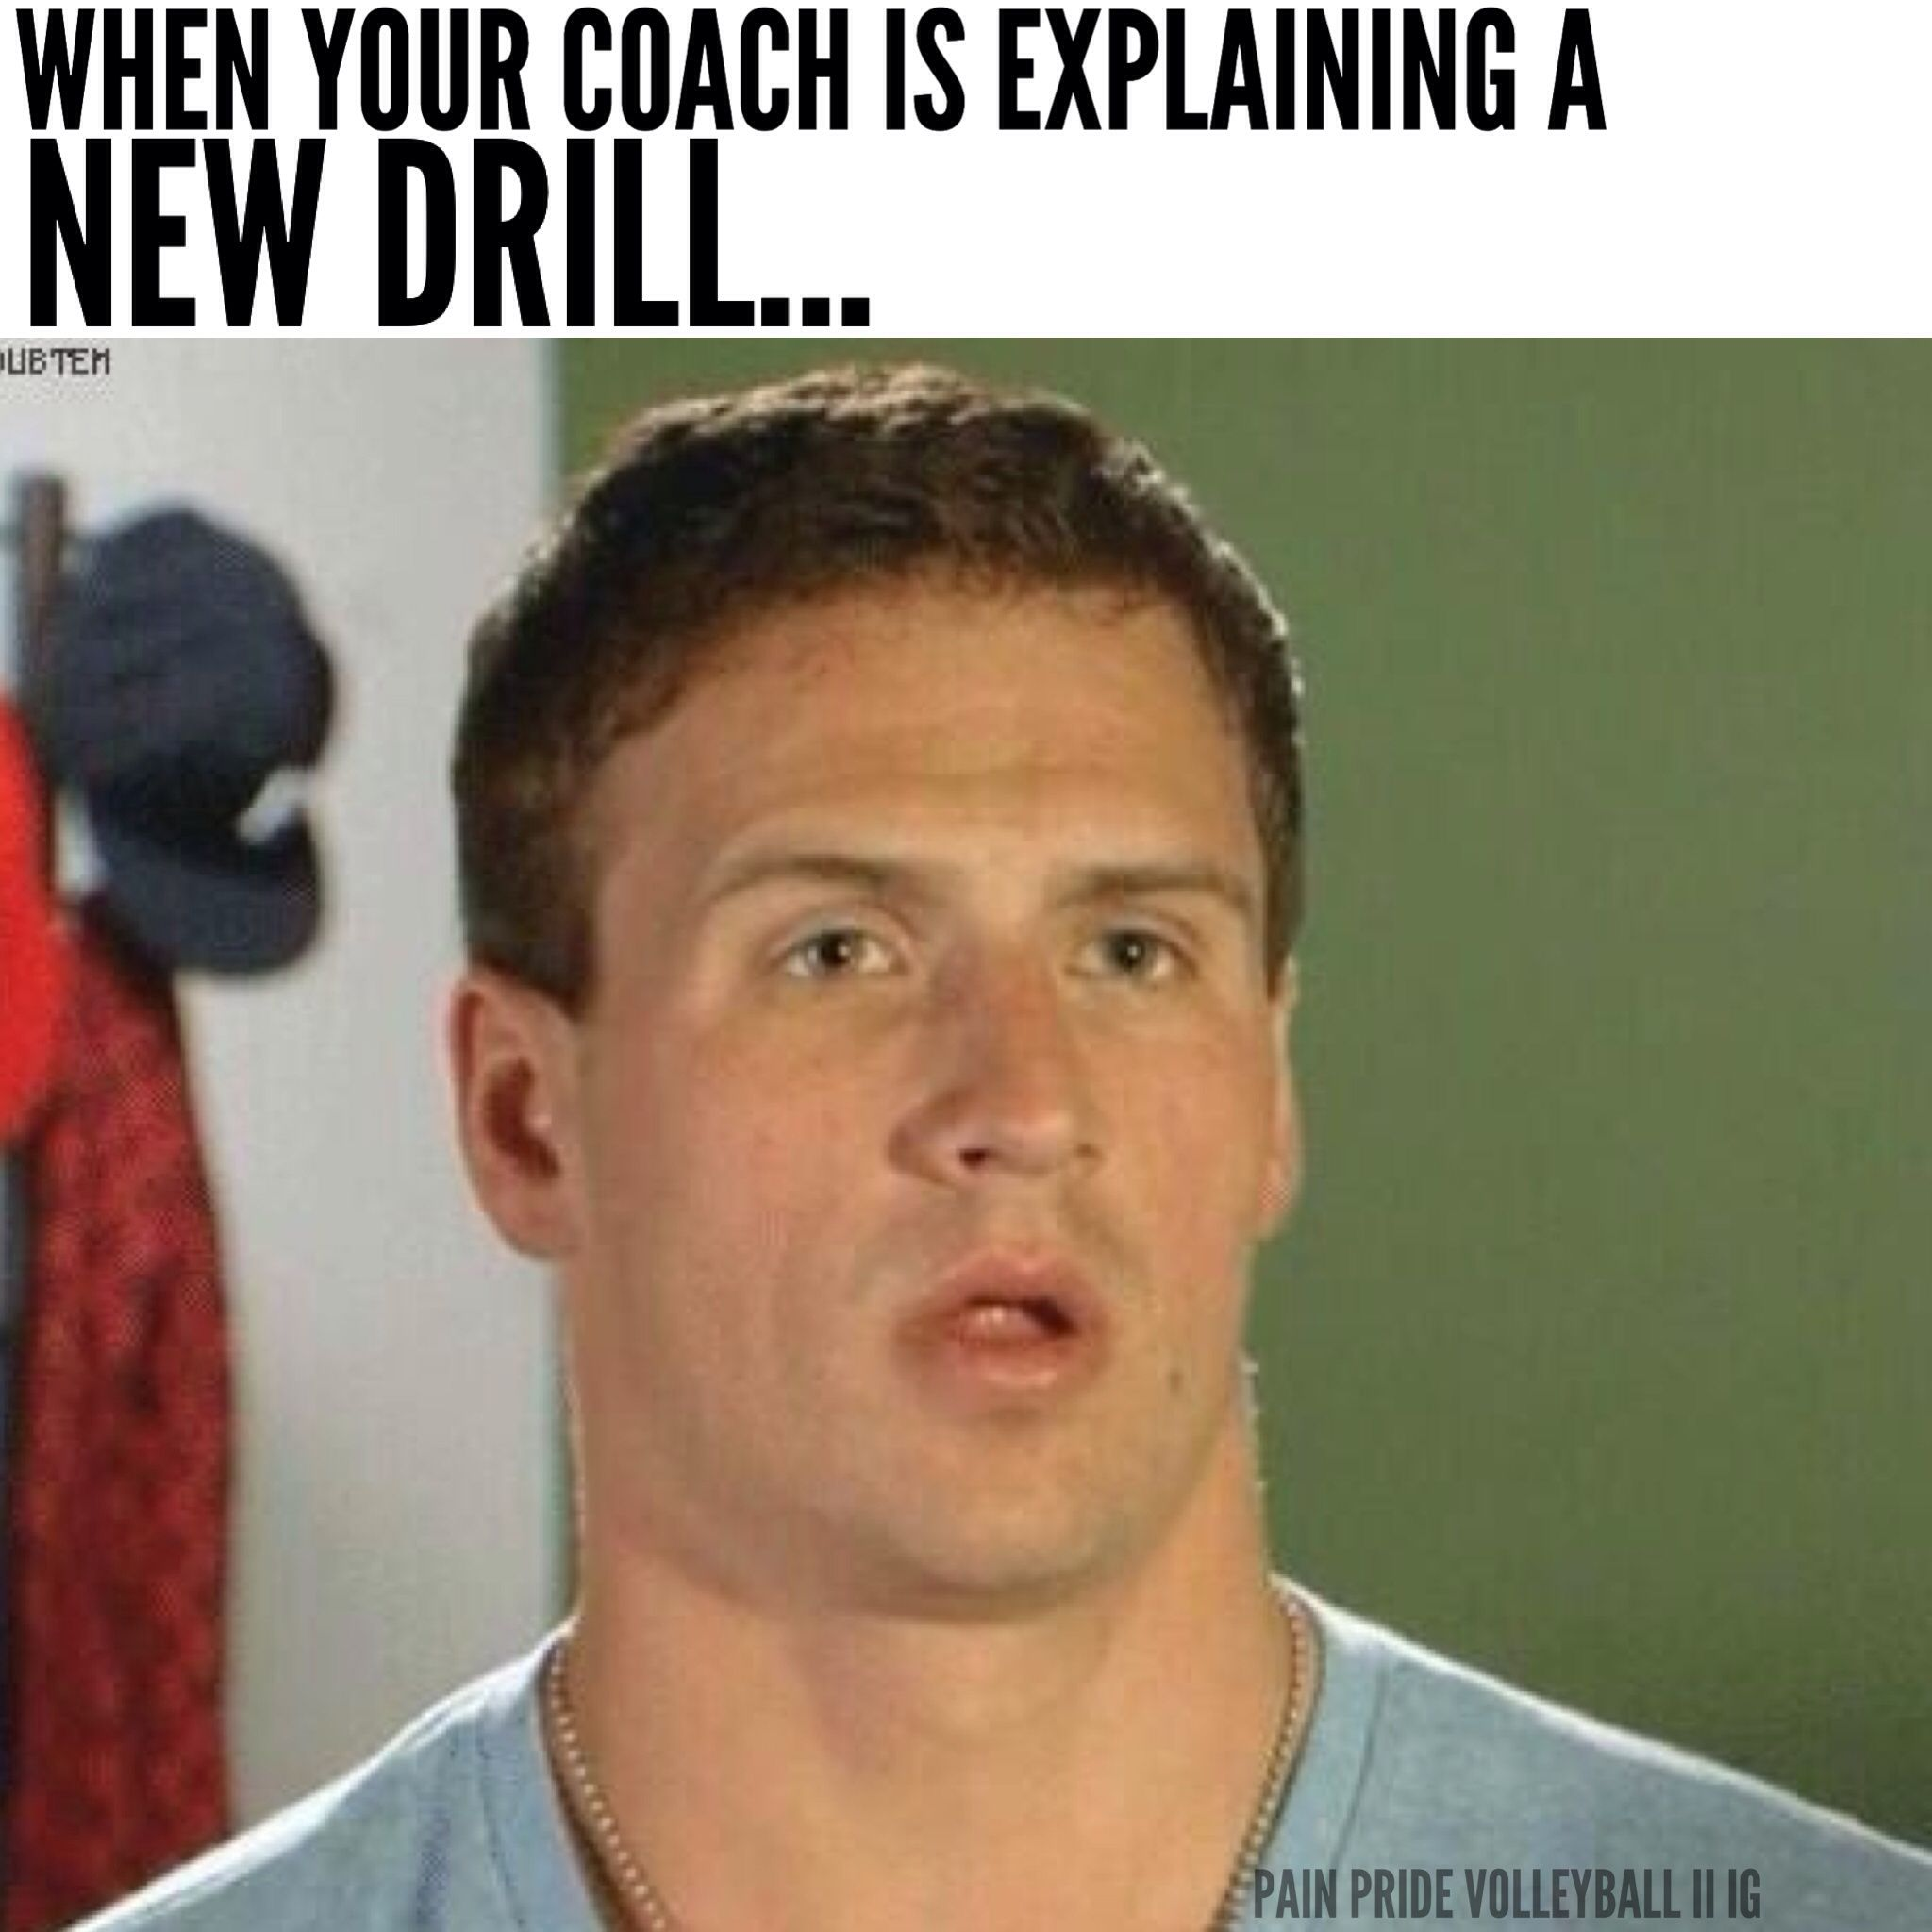 He Usually Has To Explain It A Few Times Volleyball Humor Volleyball Memes Soccer Funny